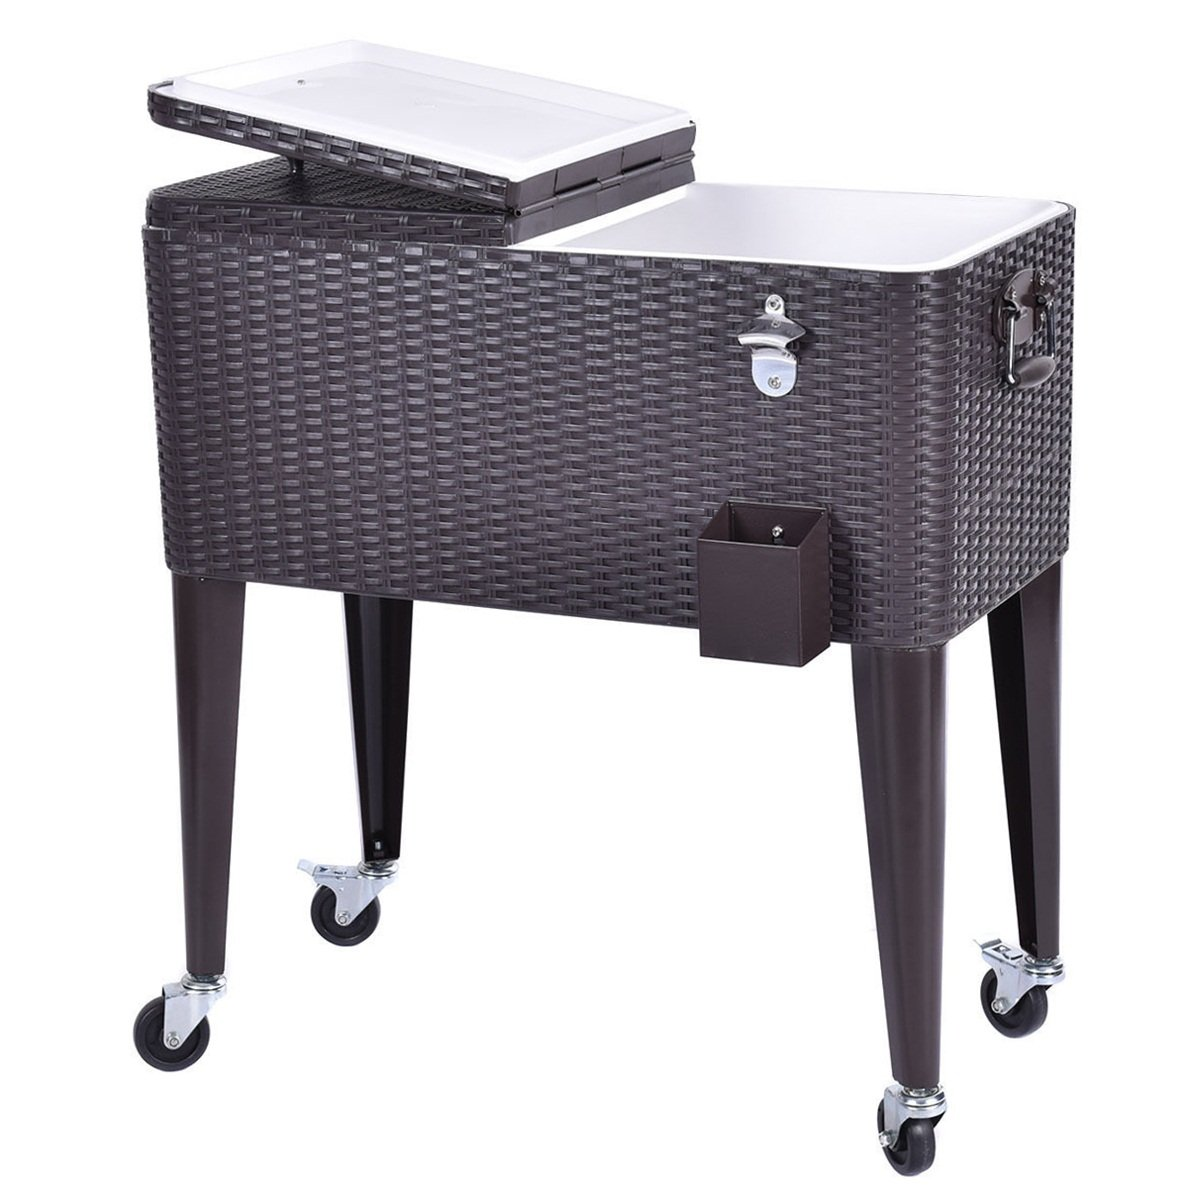 PP Rattan Cooler Cart Portable Chest with Drain Plug